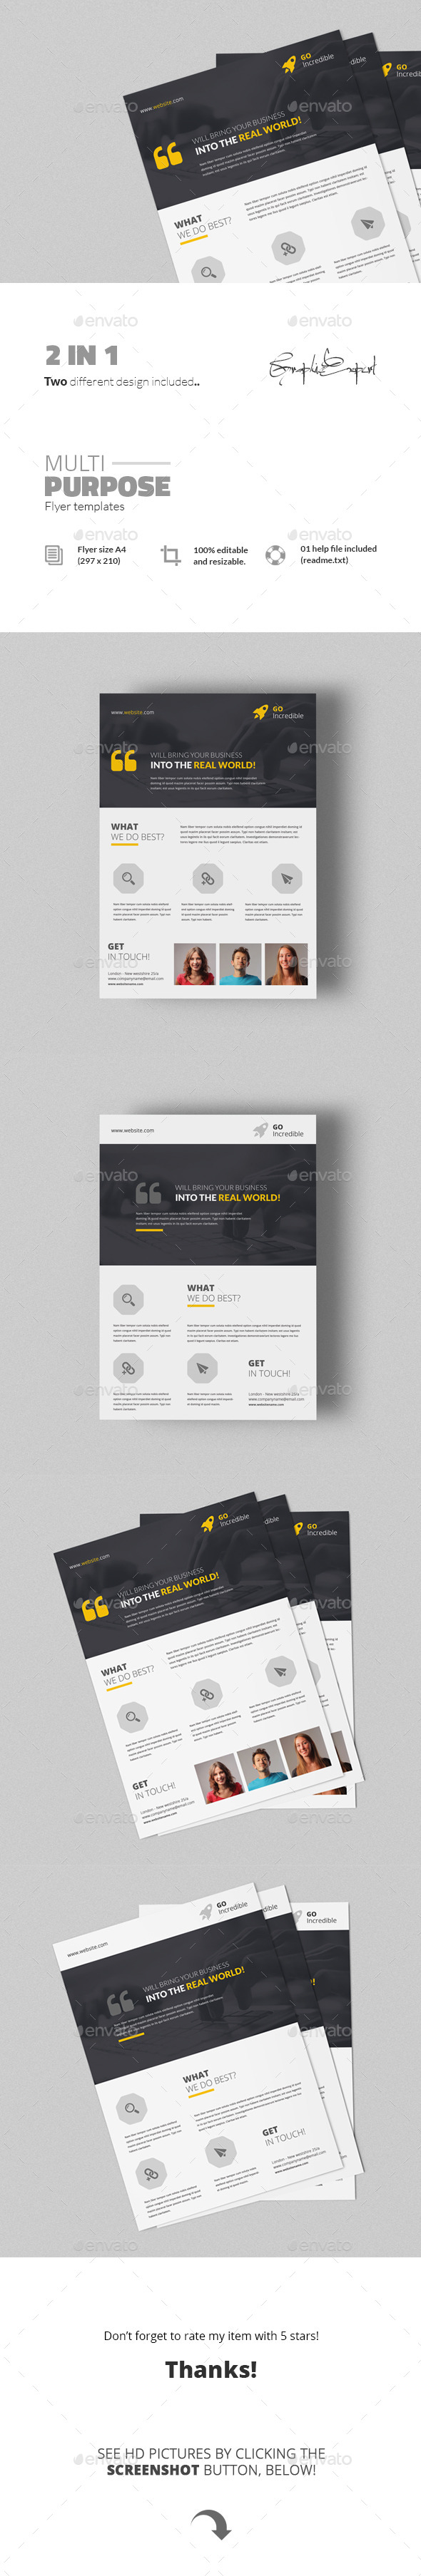 GraphicRiver Multipurpose Flyer Templates 2 in 1 11590943